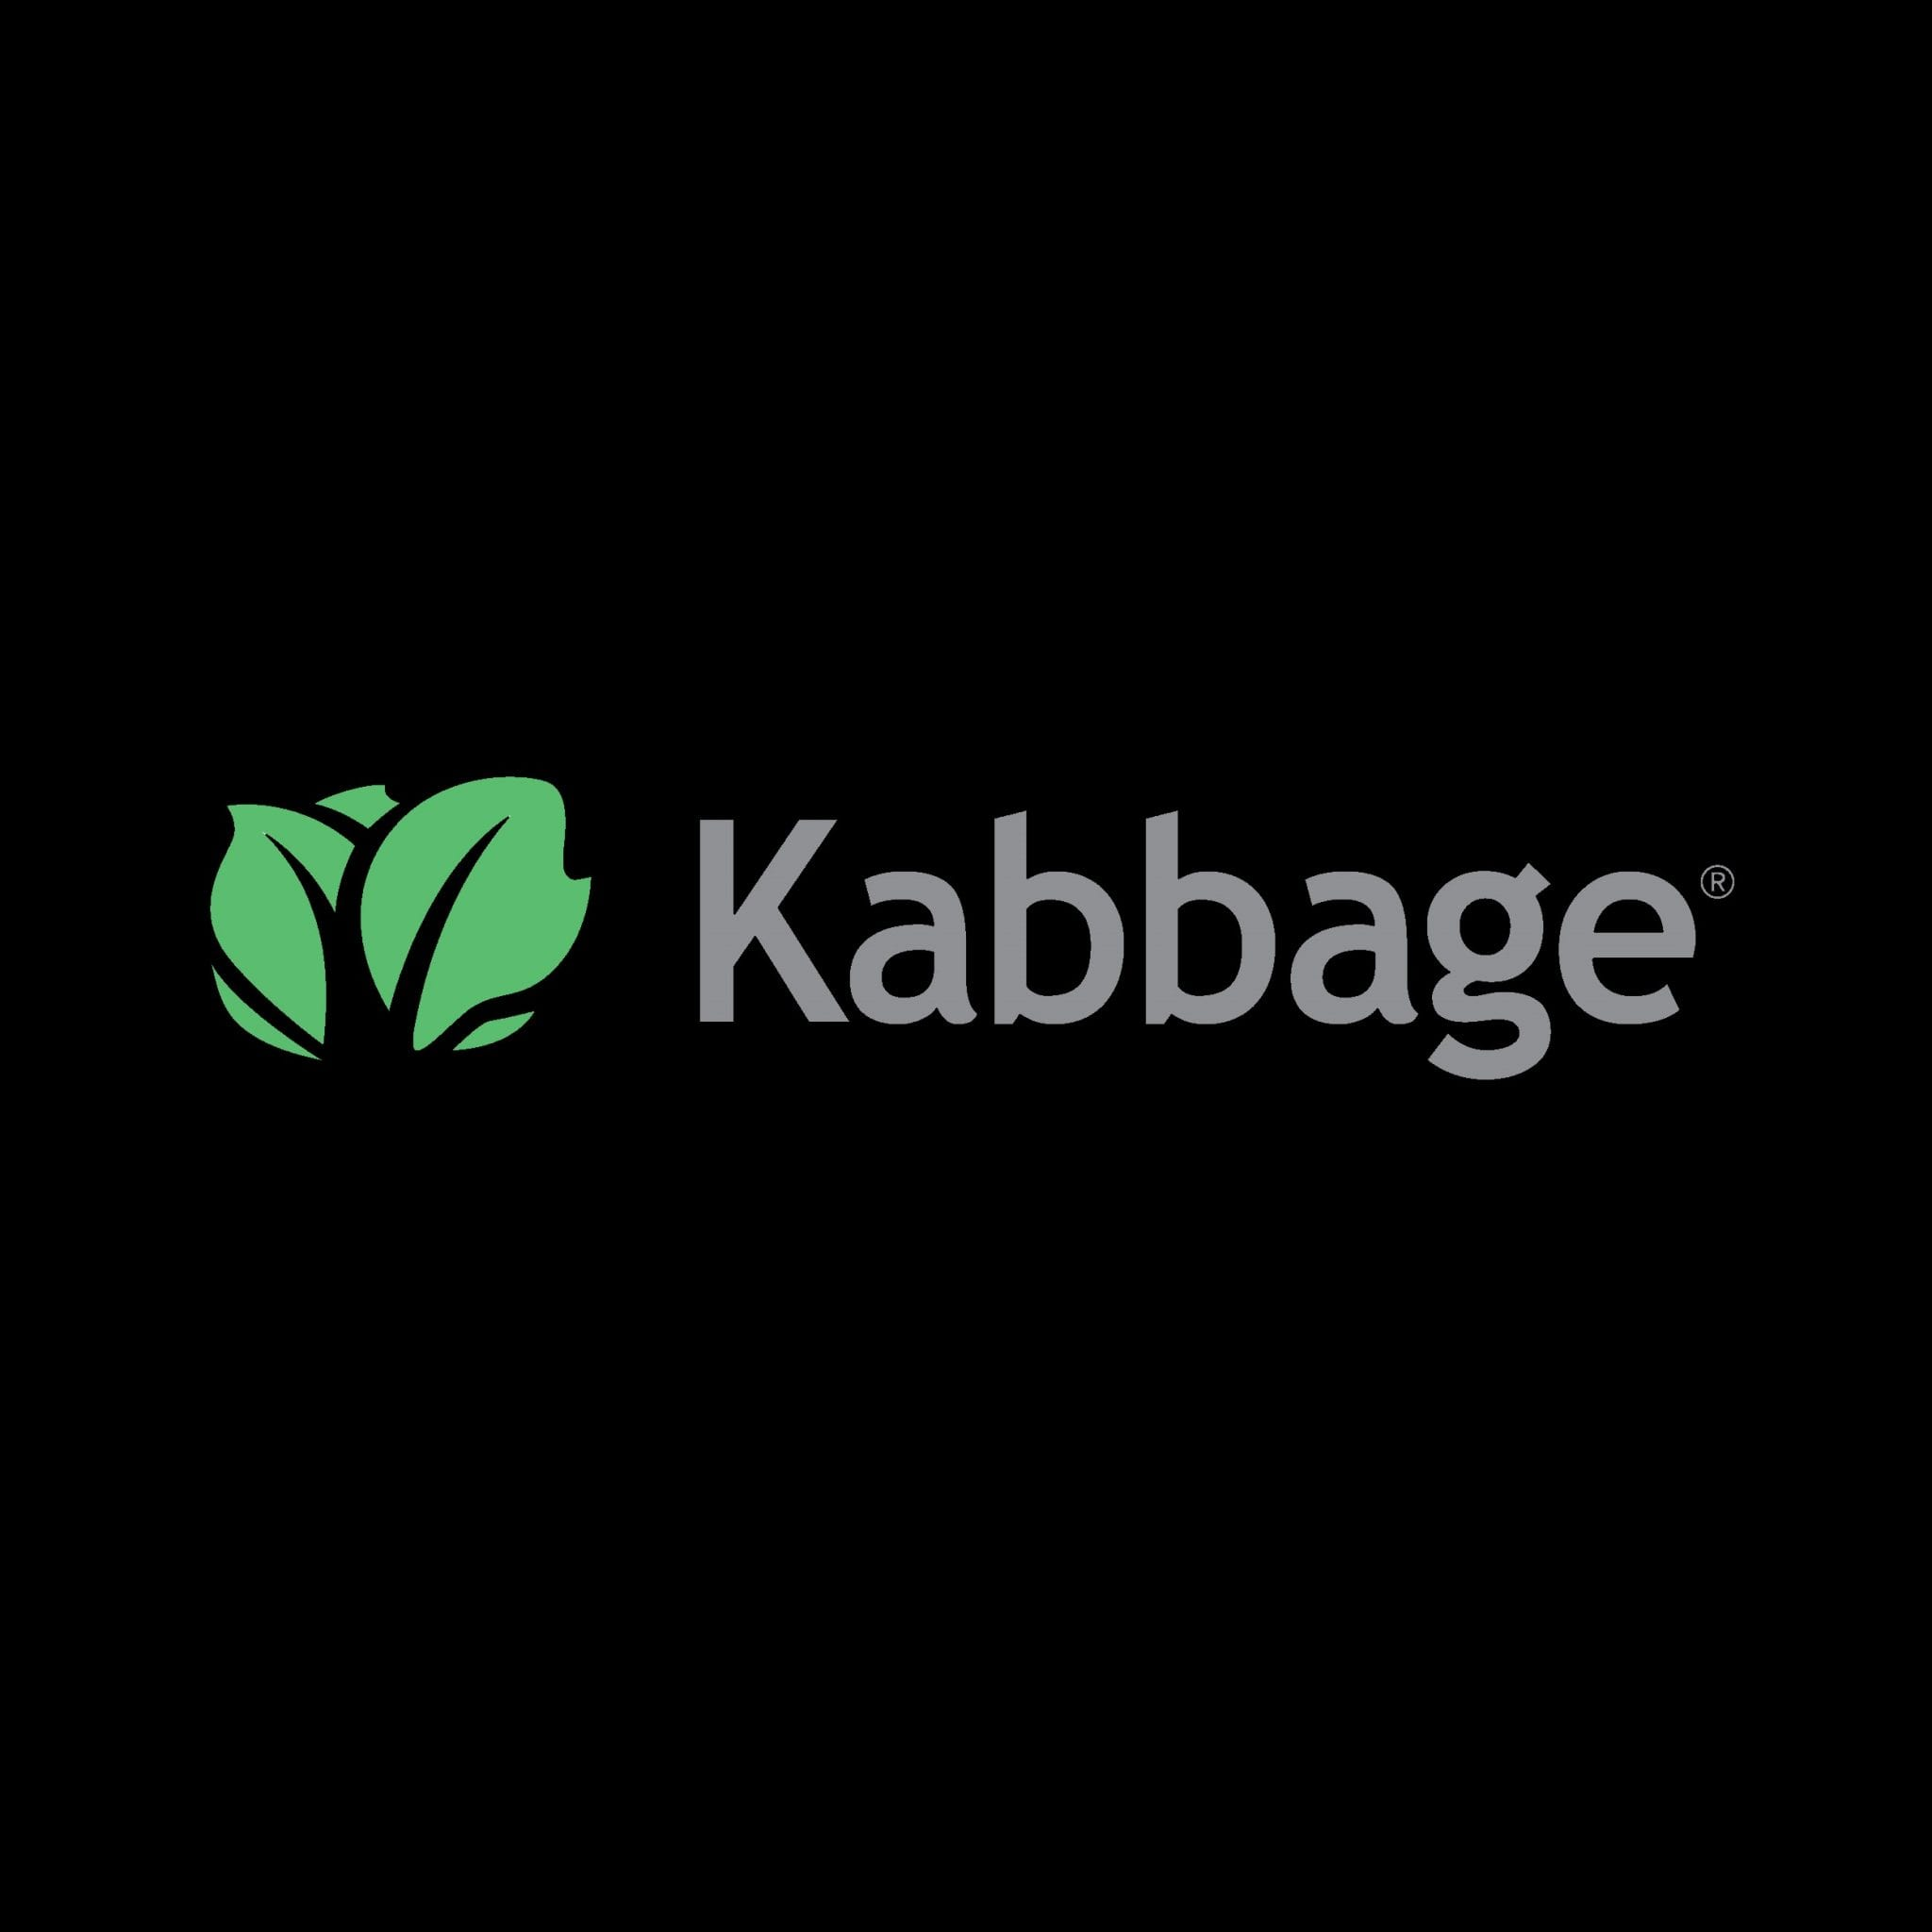 Apply to a small business loan for FREE. Visit us at Kabbage.com